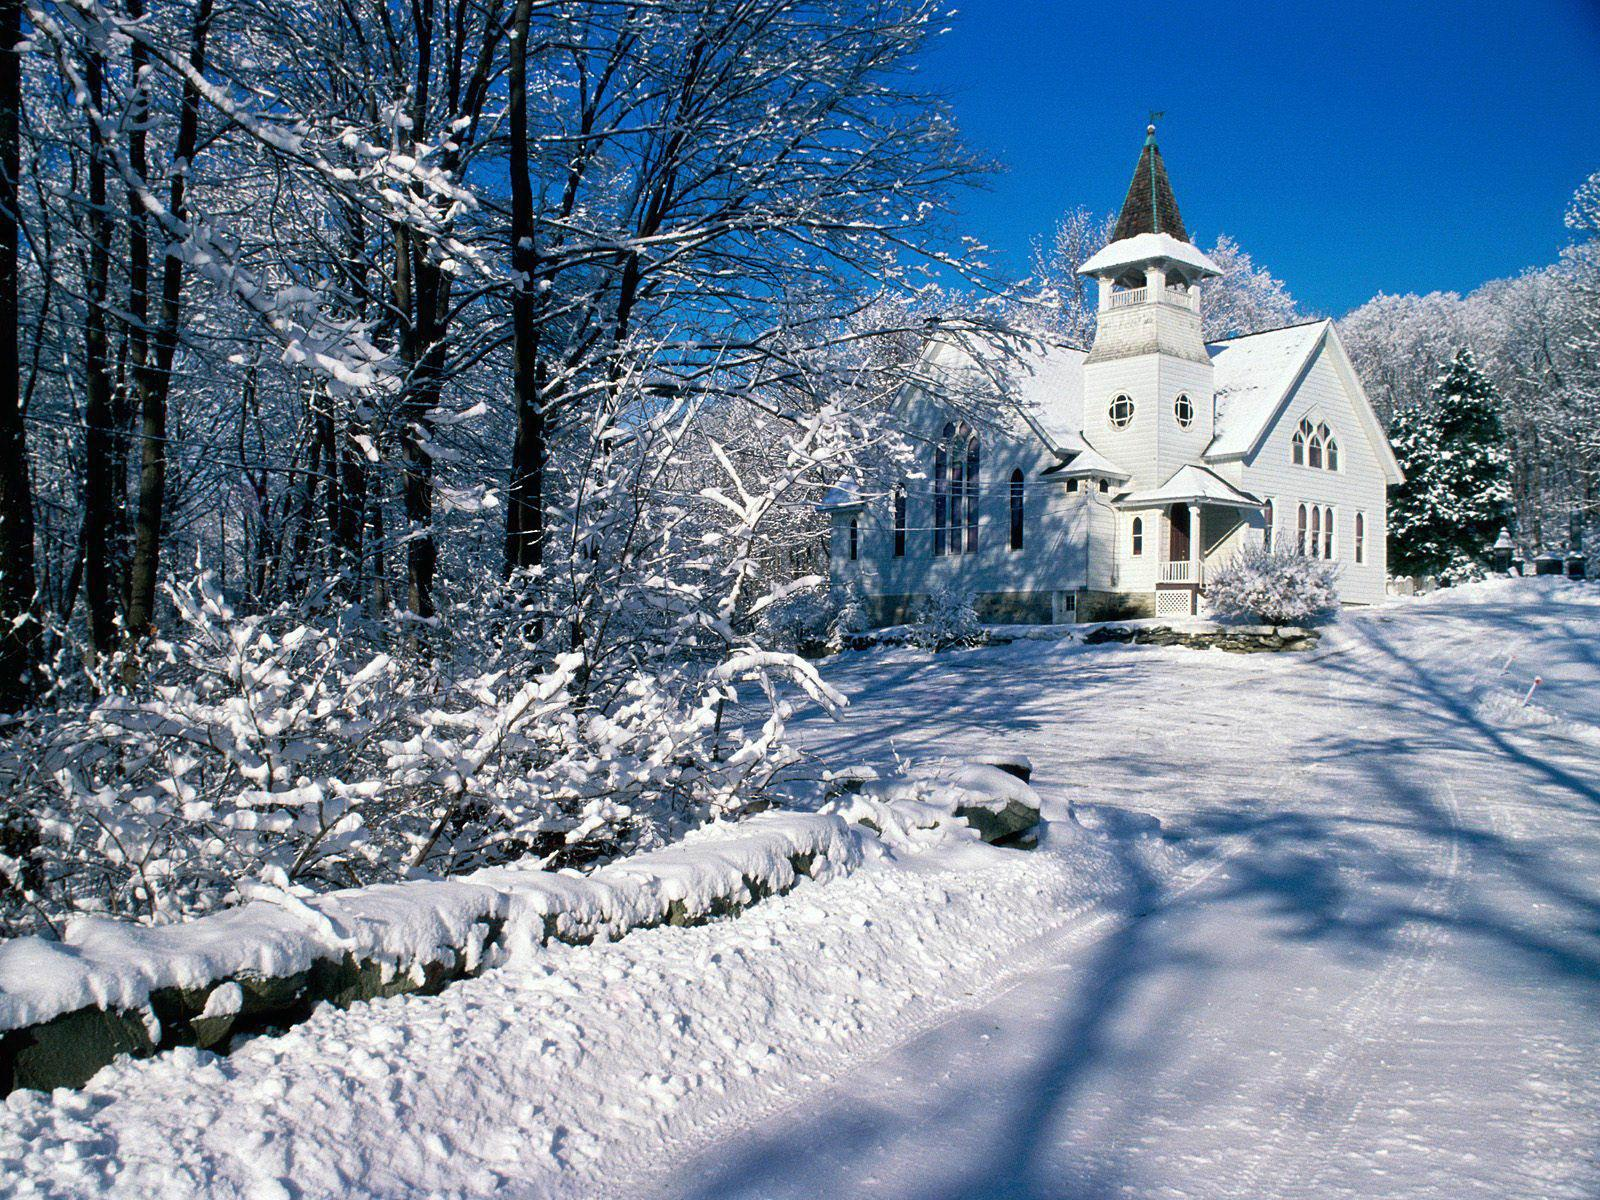 Winter landscape wallpapers clickandseeworld is all about for Sfondi invernali desktop